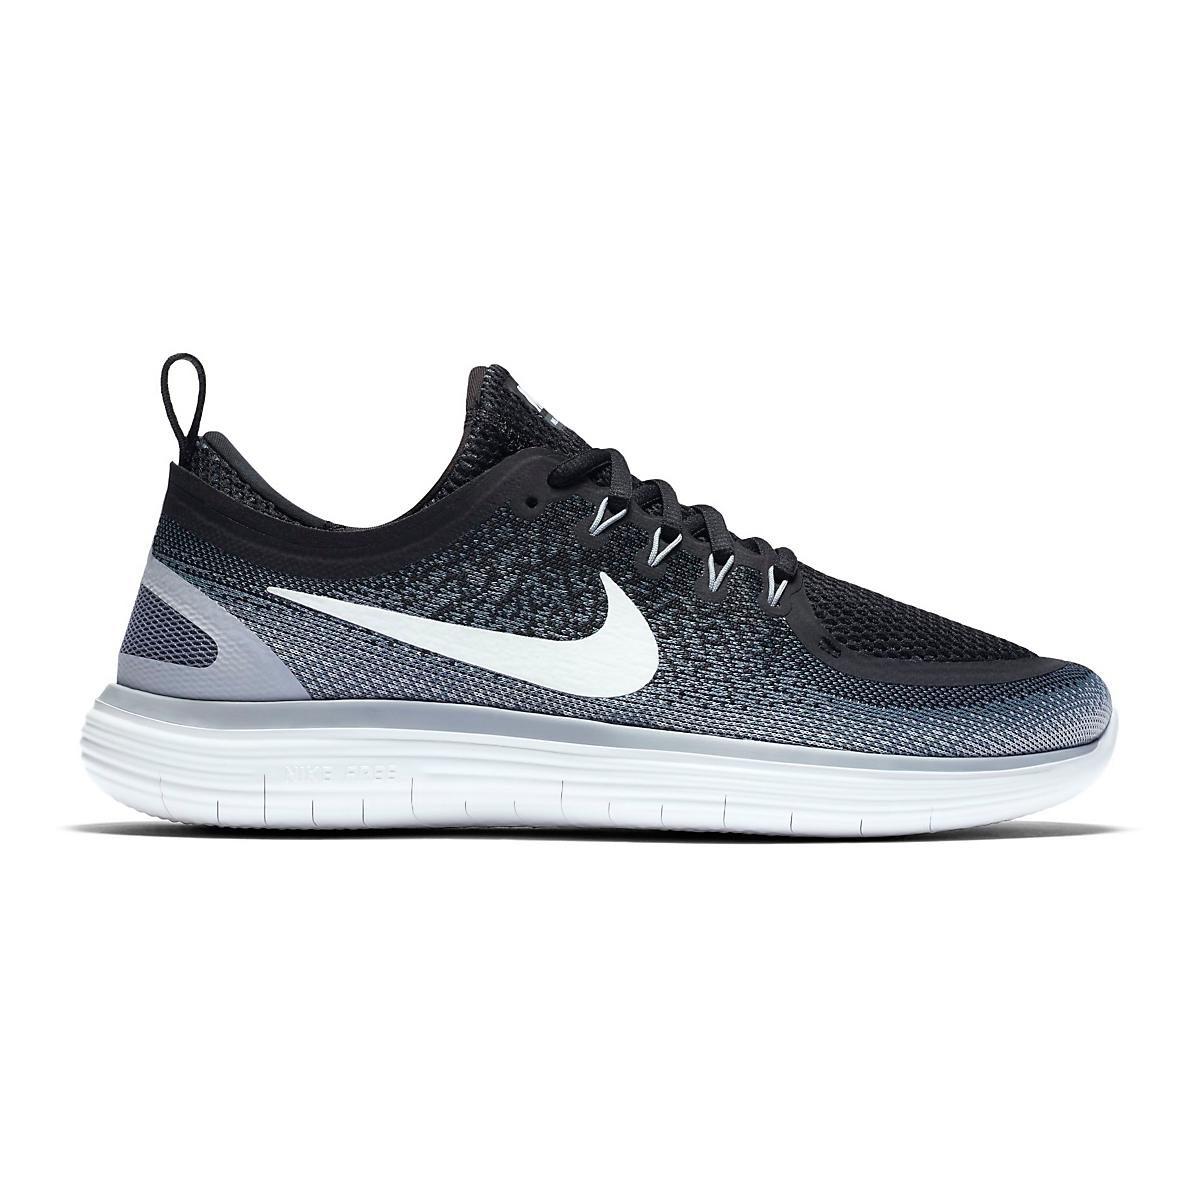 92c3e63d821b Womens Nike Free RN Distance 2 Running Shoe at Road Runner Sports